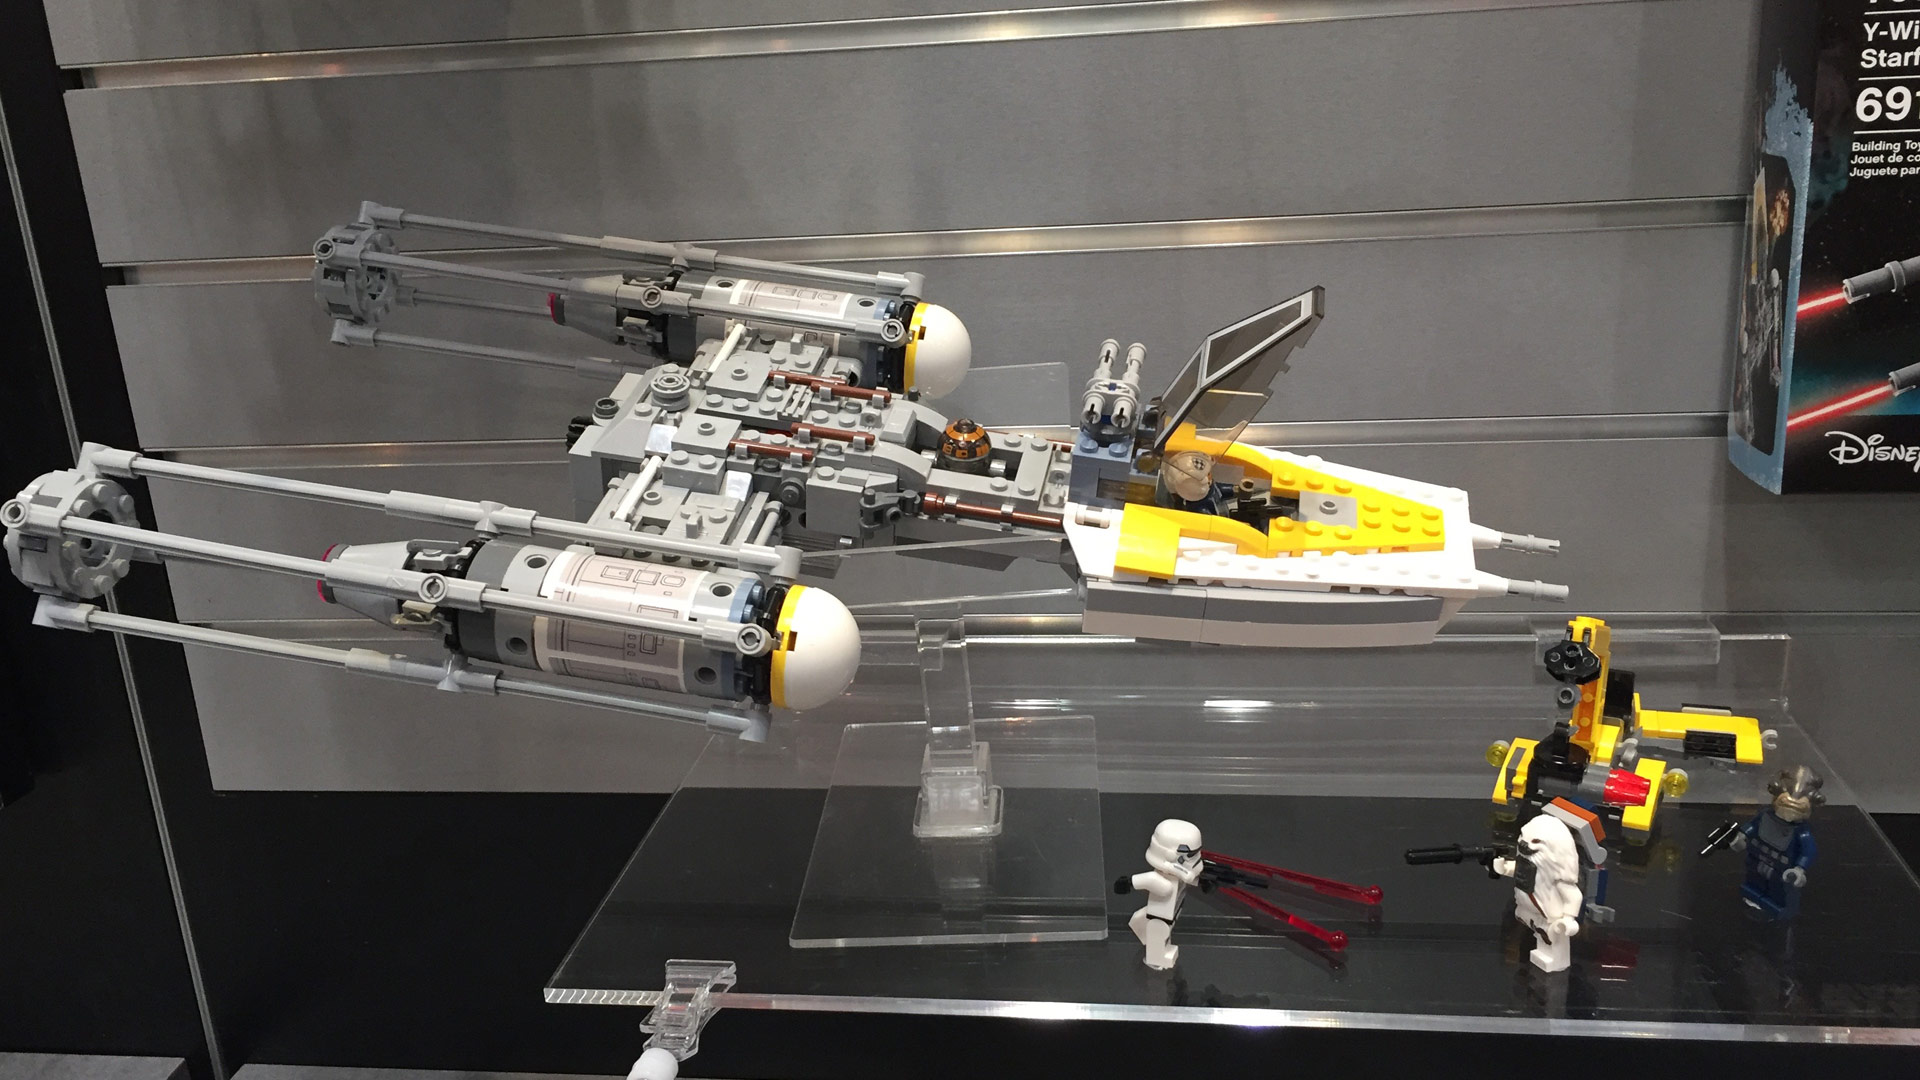 LEGO Star Wars Set 75172 Y-Wing Starfighter at Toy Fair 2017